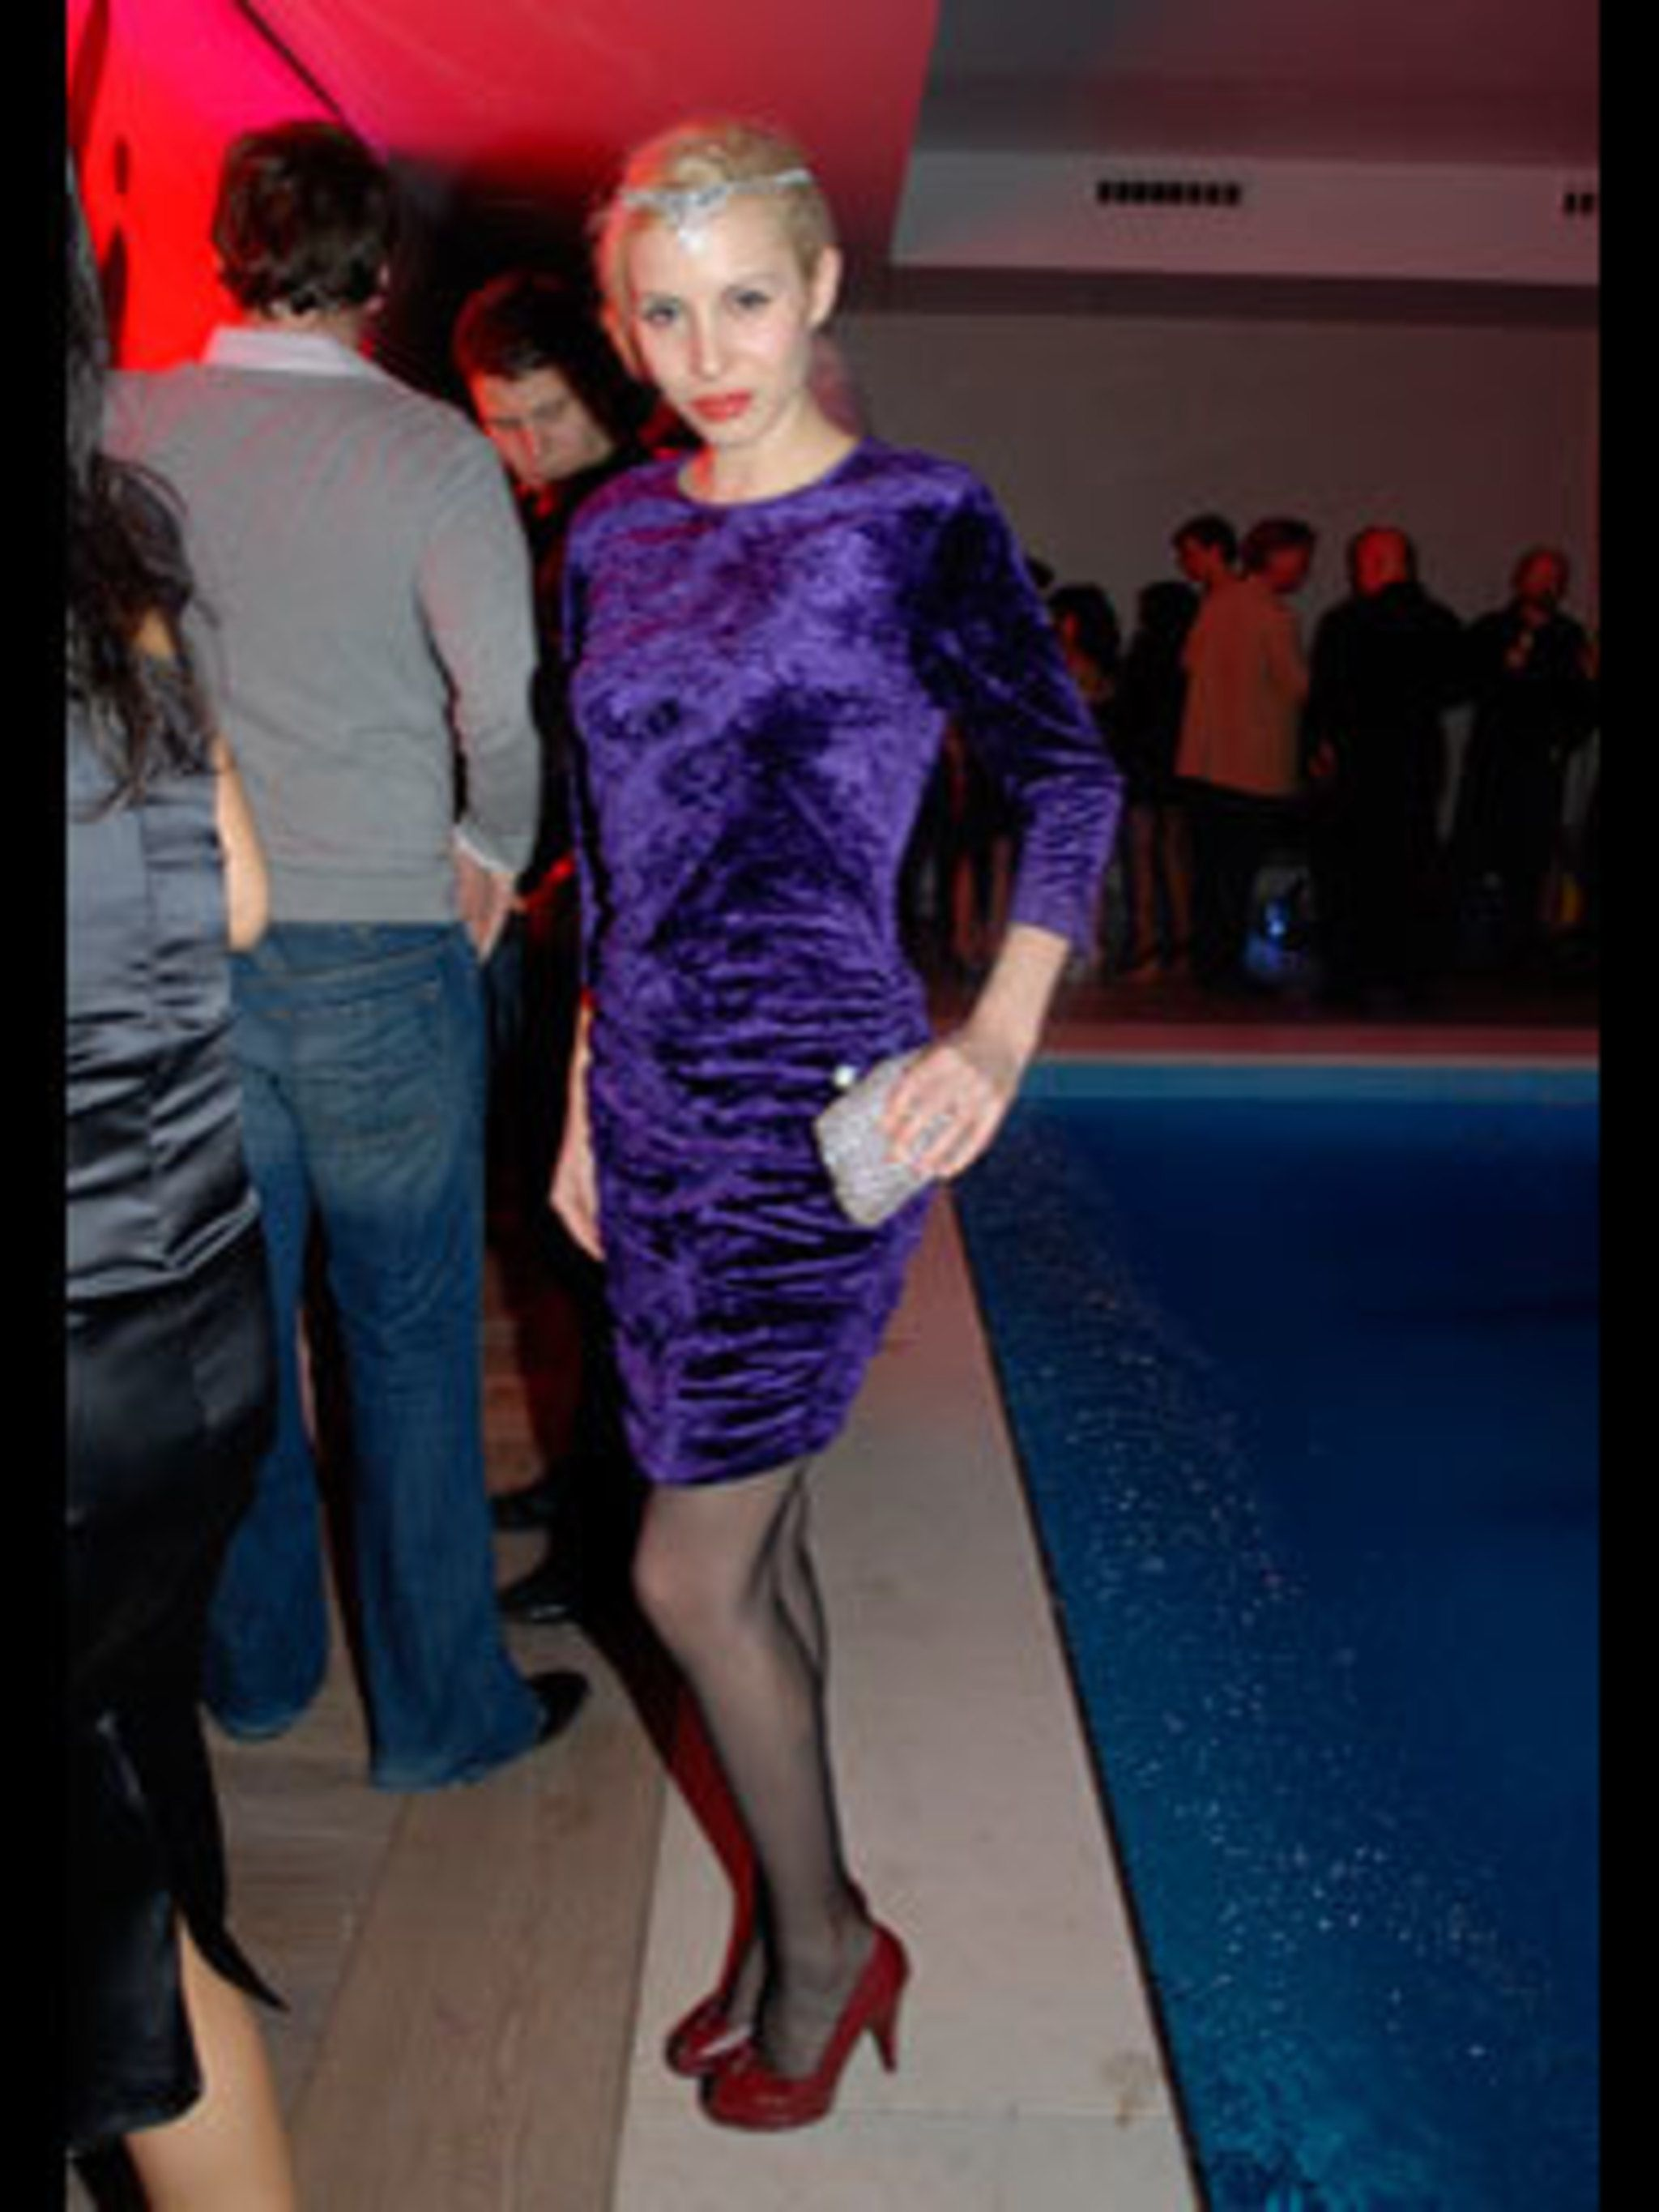 <p>Annette's fabulous crushed velvet, body conscious dress from Beyond Retro works so well because she exudes confidence - her Agent Provocateur stockings may have something to do with that. </p>